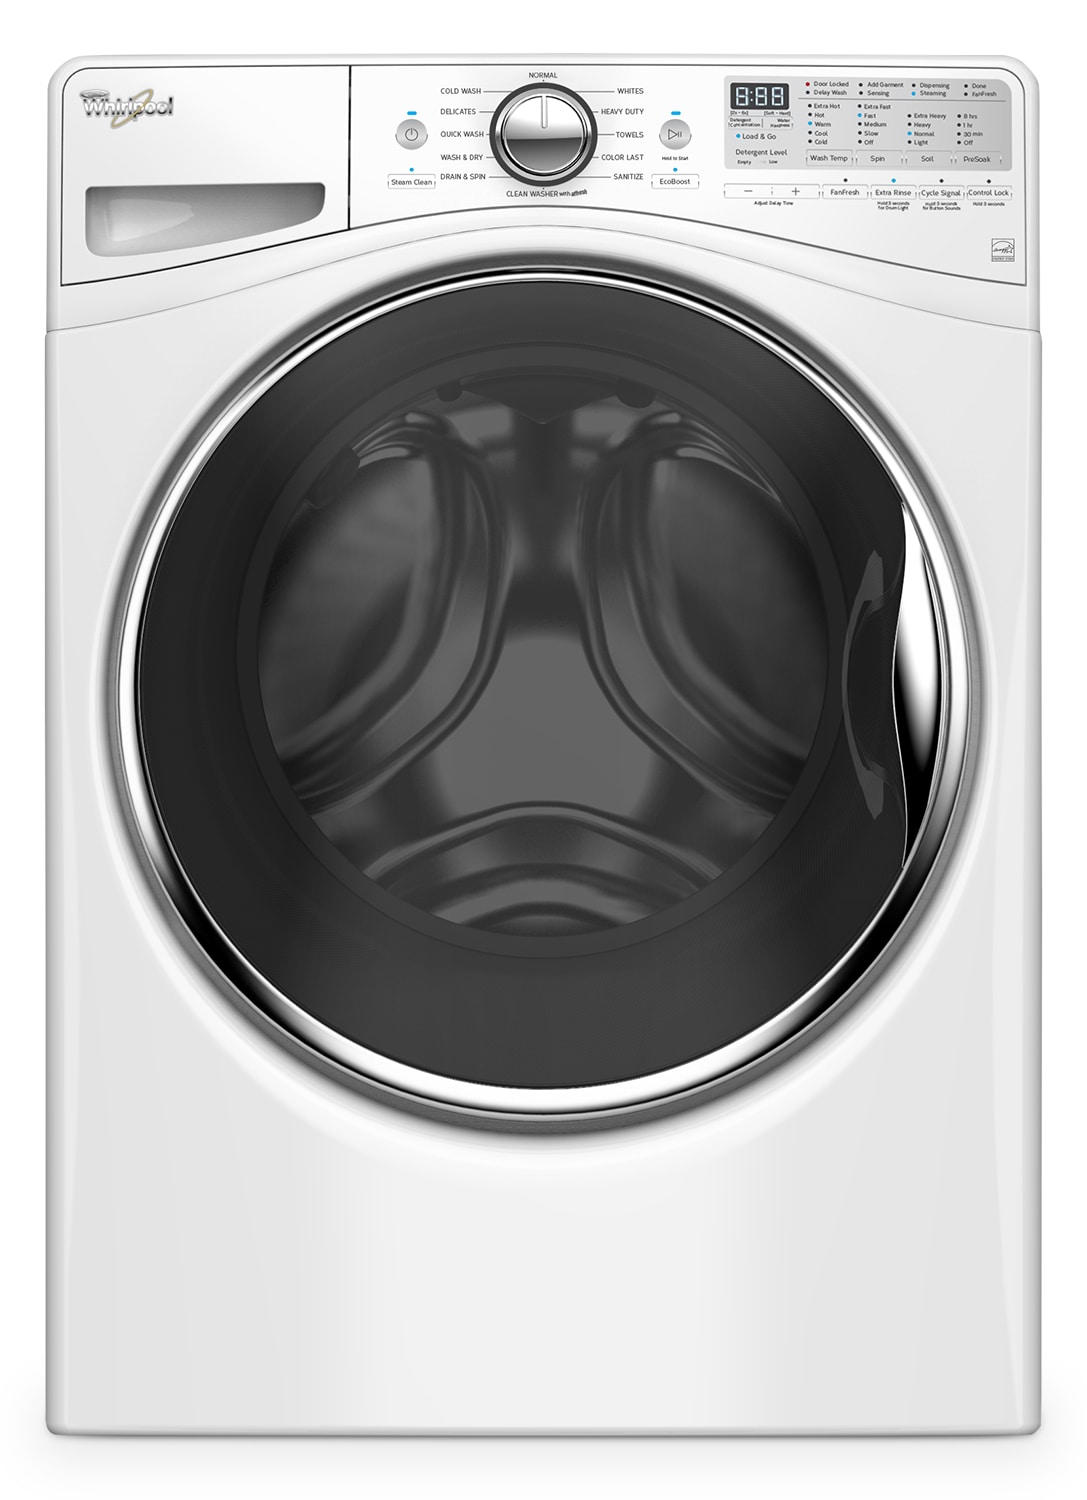 Washers and Dryers - Whirlpool White Front-Load Washer (5.2 Cu. Ft. IEC) - WFW92HEFW